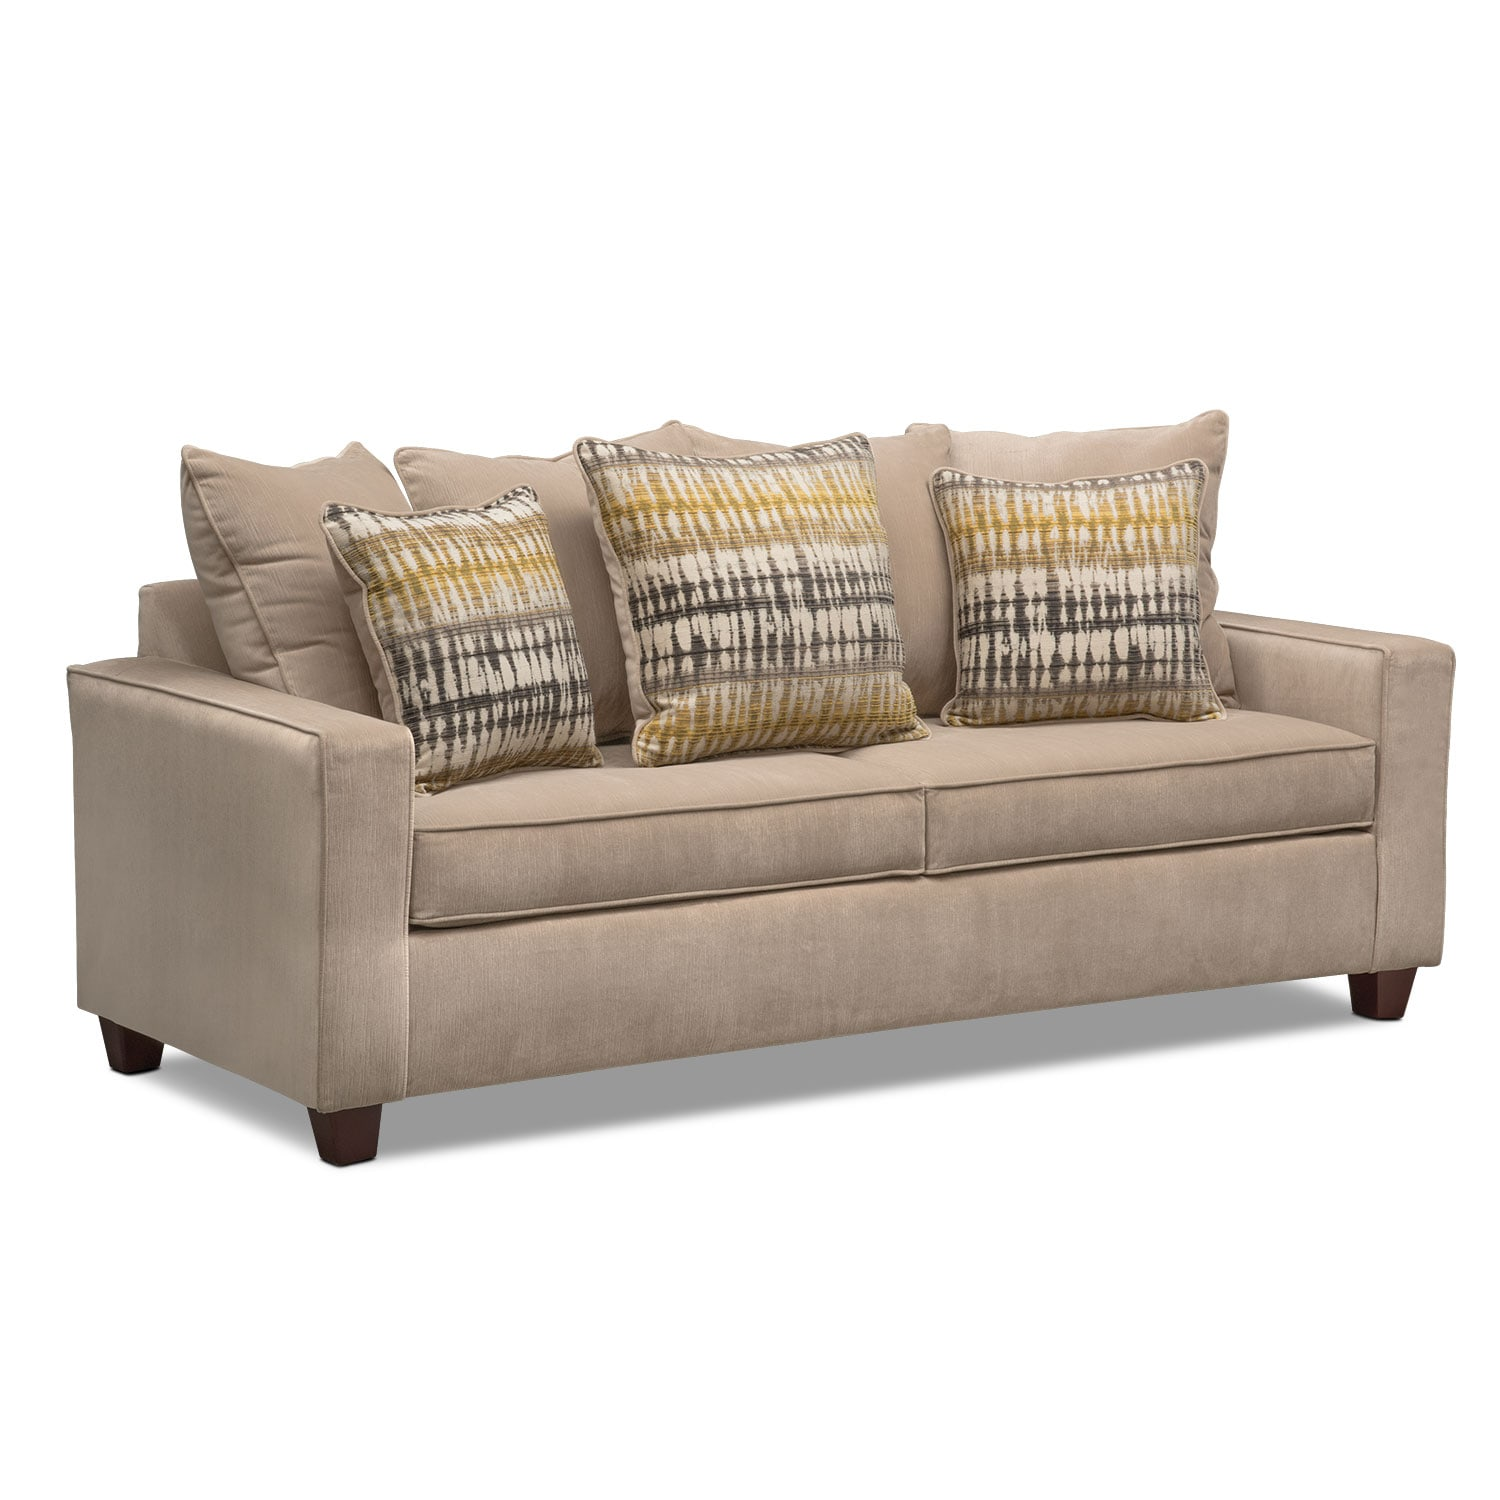 Bryden Queen Innerspring Sleeper Sofa - Beige